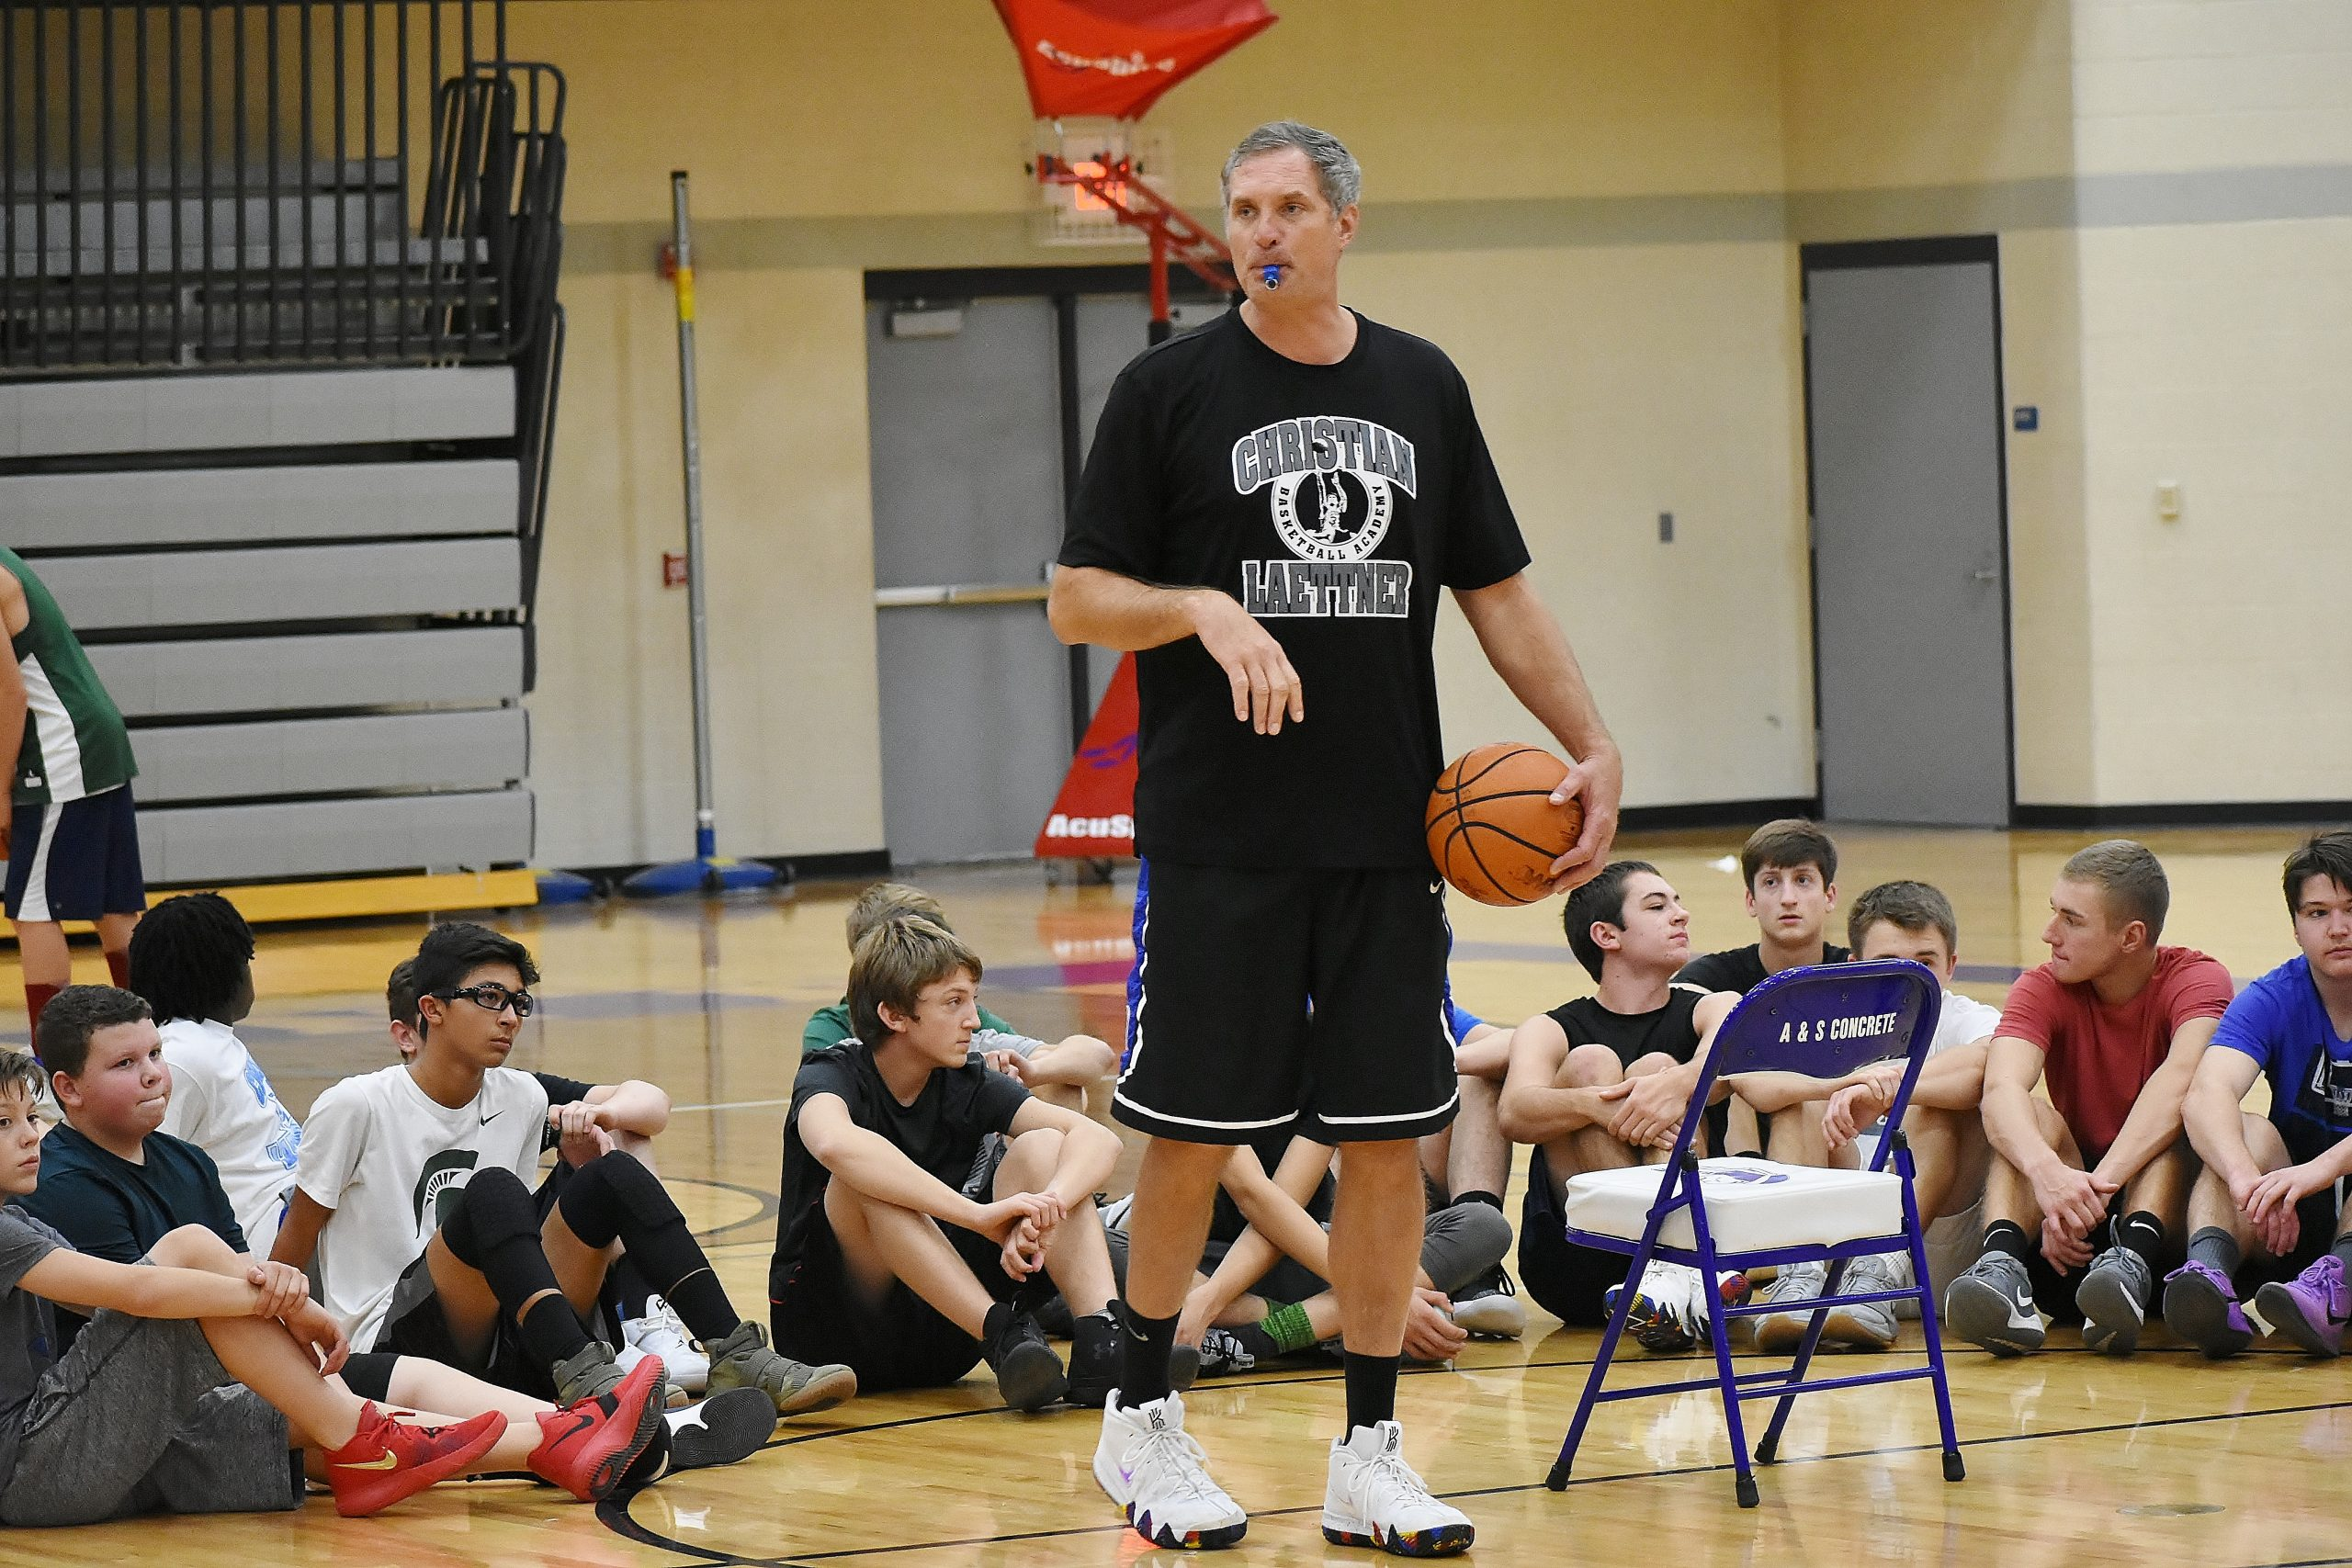 Laettner Holds Basketball Camps In Gladstone